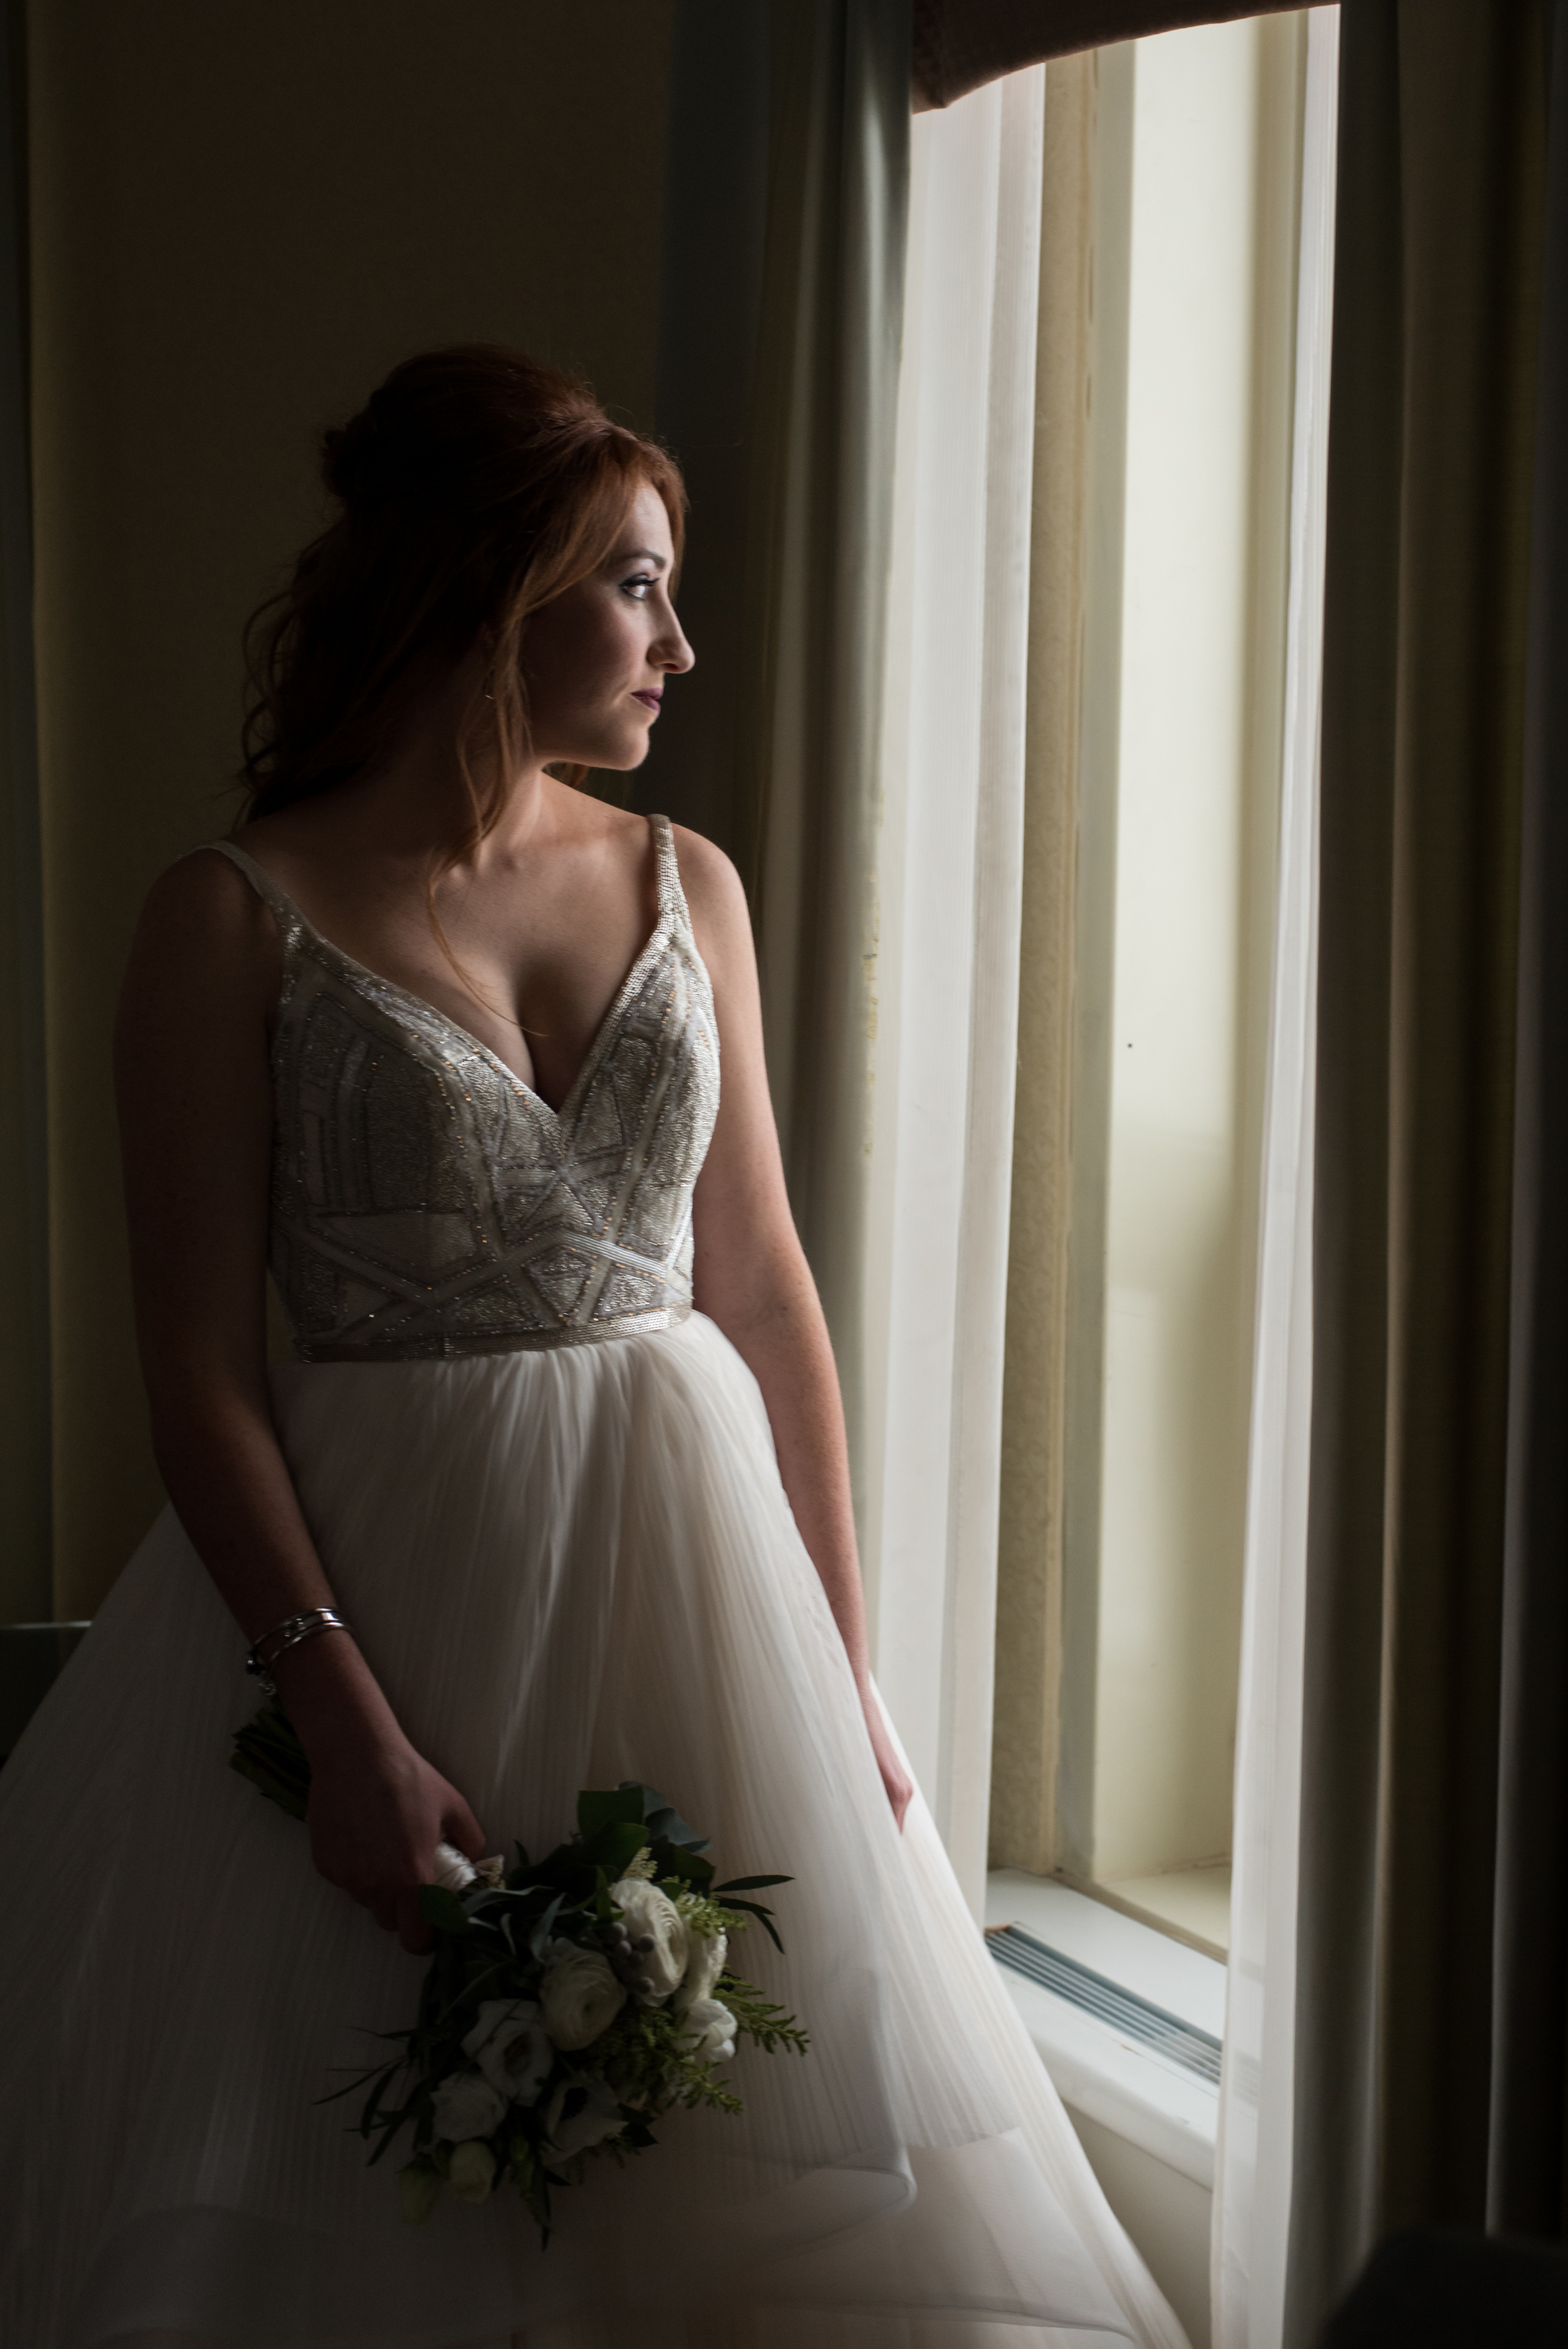 Portrait of the bride in her gown and bouquet gazing out the window